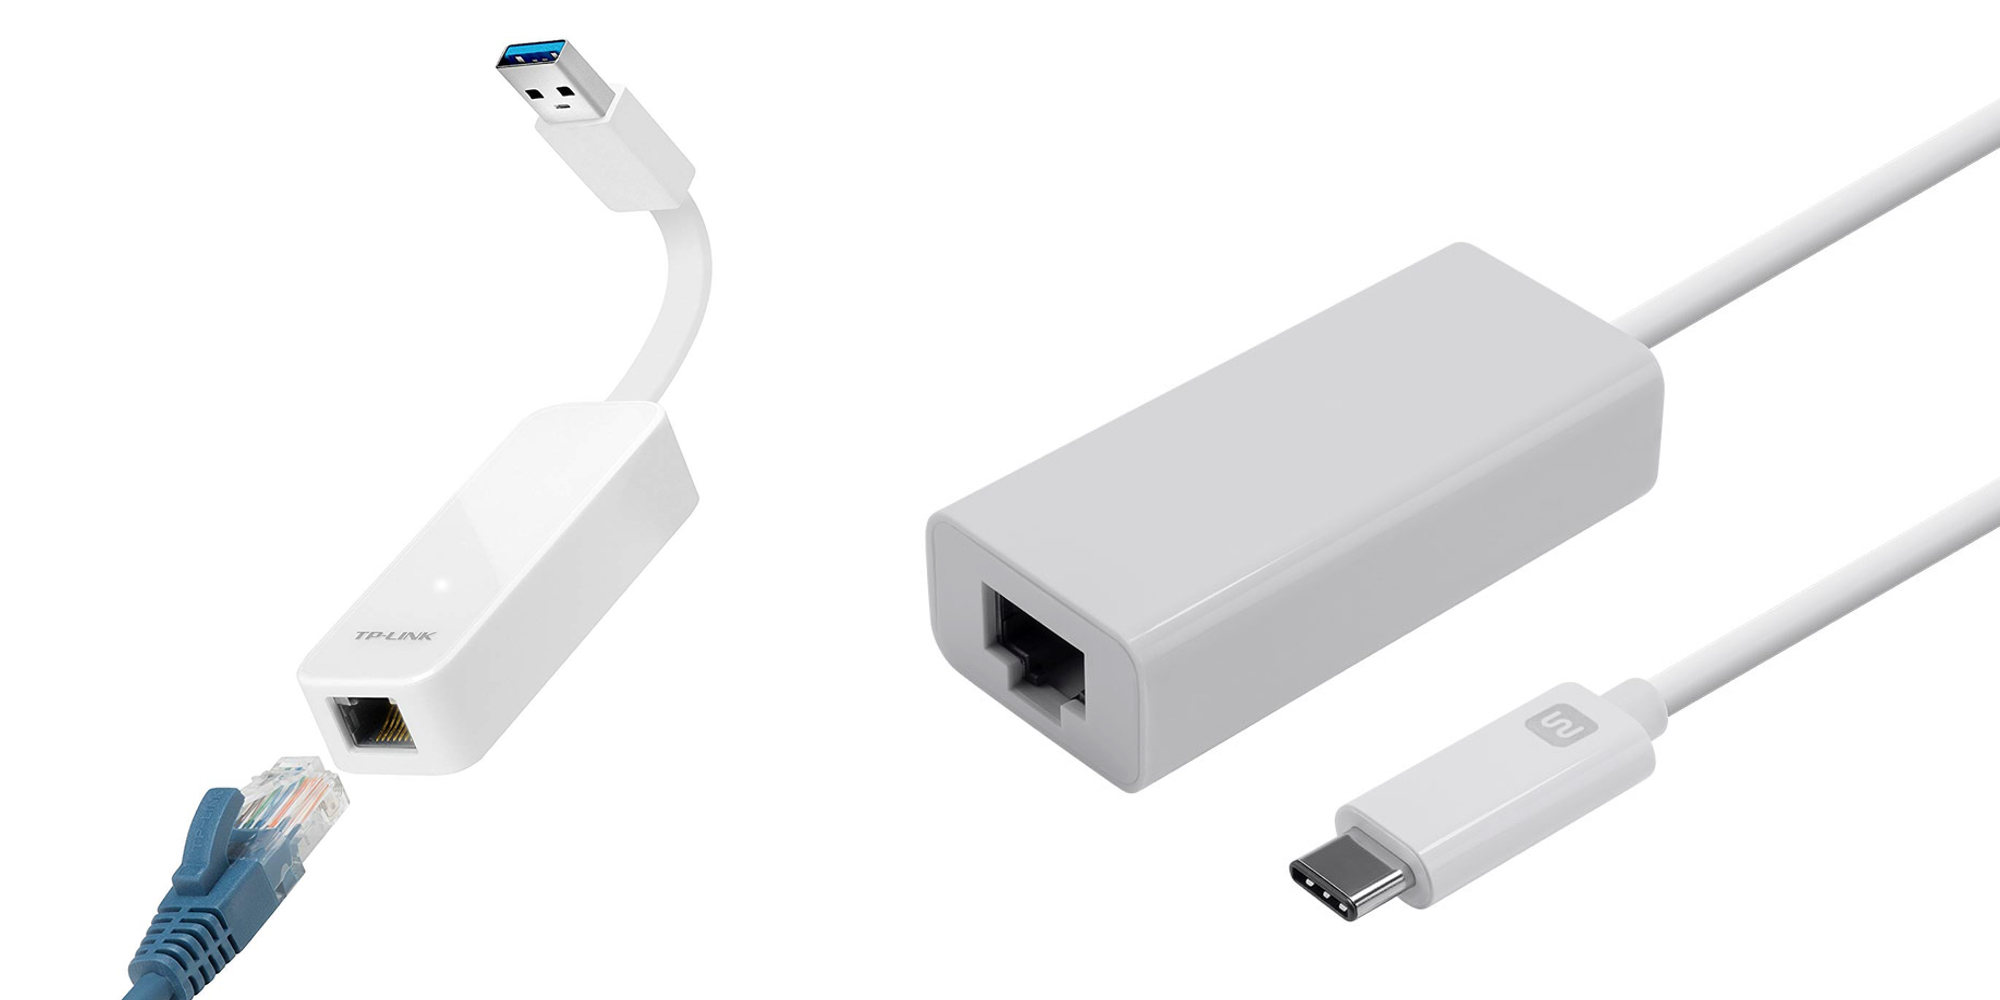 Bring Gigabit Ethernet to your Mac with these adapters: USB 3.0 $11 or two USB-C for $10